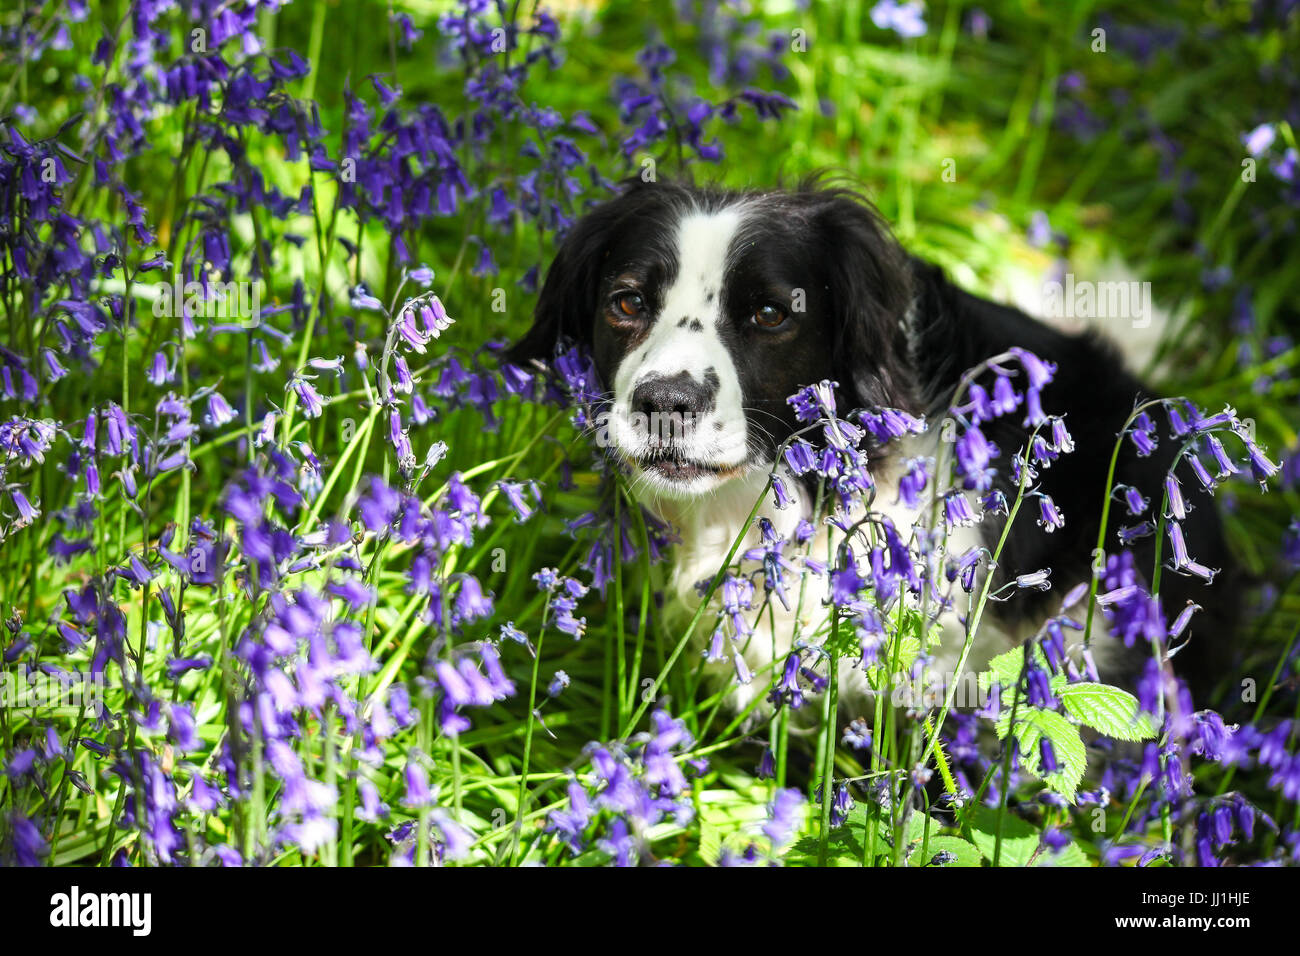 Molly the Border Collie cross dog amongst the Bluebells at Target Wood Stoke on Trent Staffordshire England UK - Stock Image